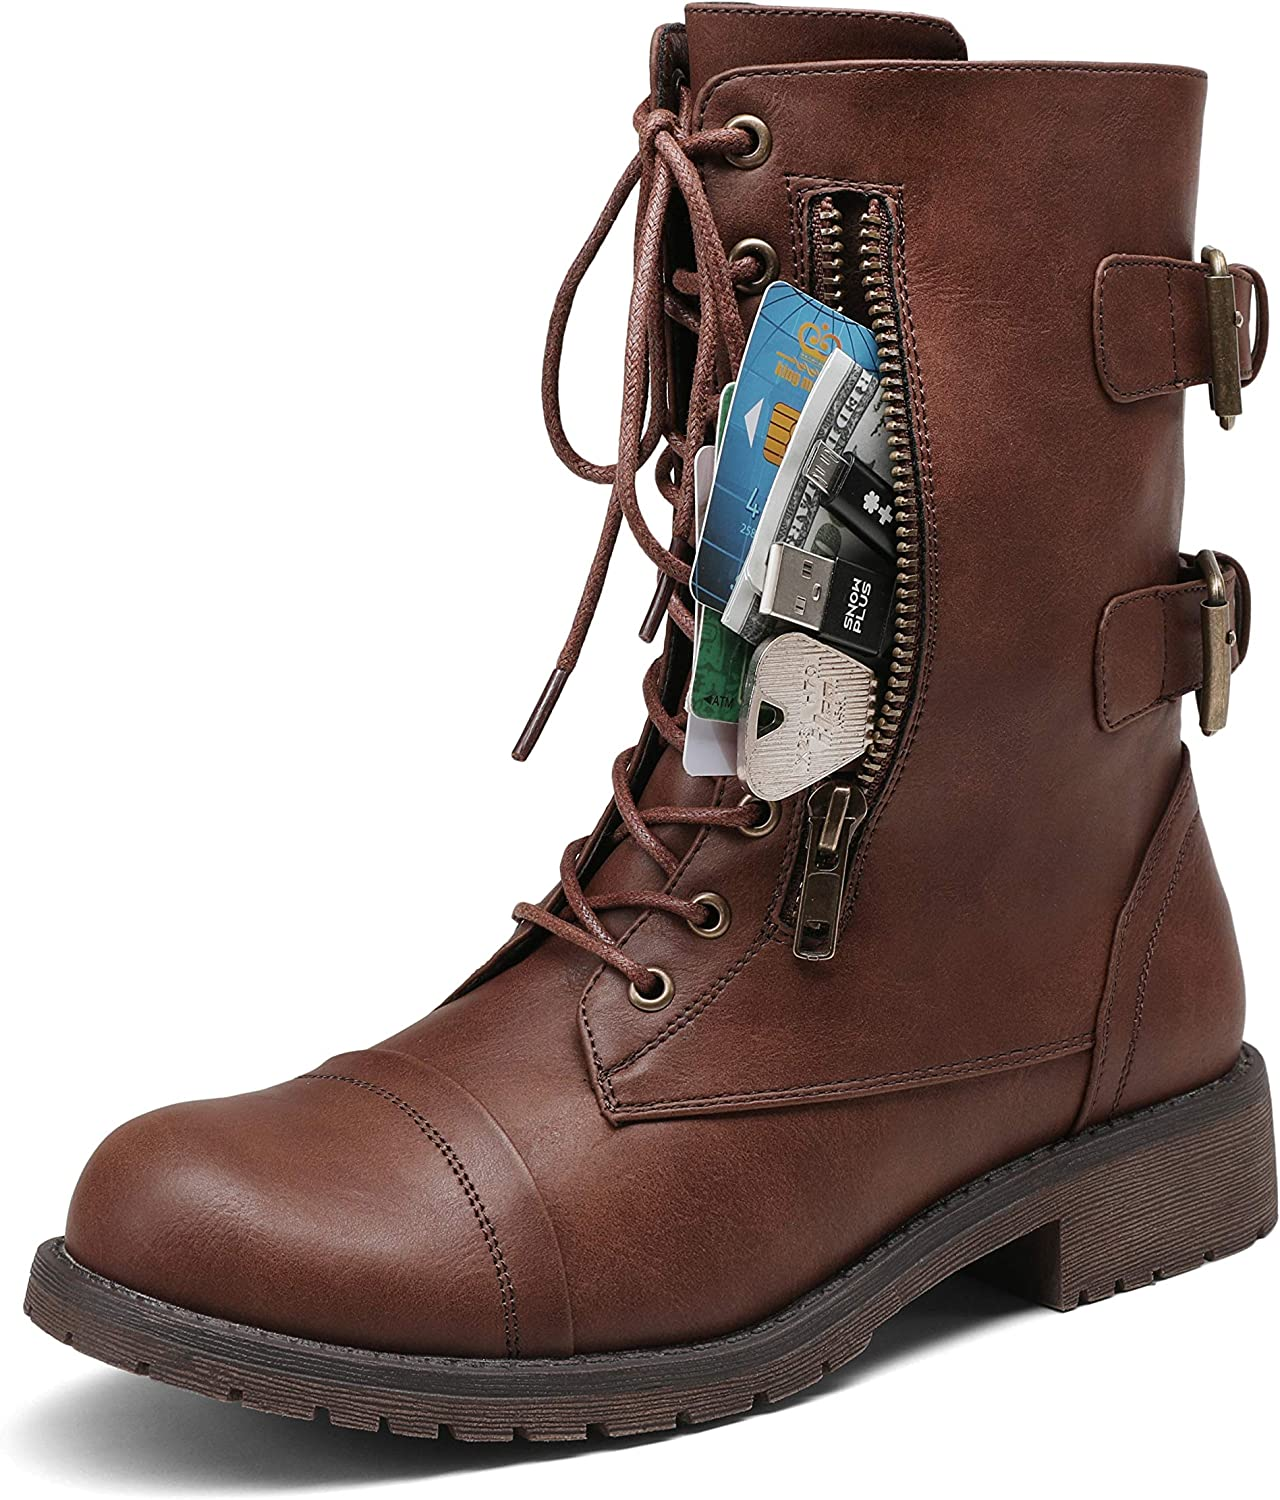 VEPOSE Women's 28 Mid Calf Boots Military Combat Boot with Card Knife Wallet Pocket